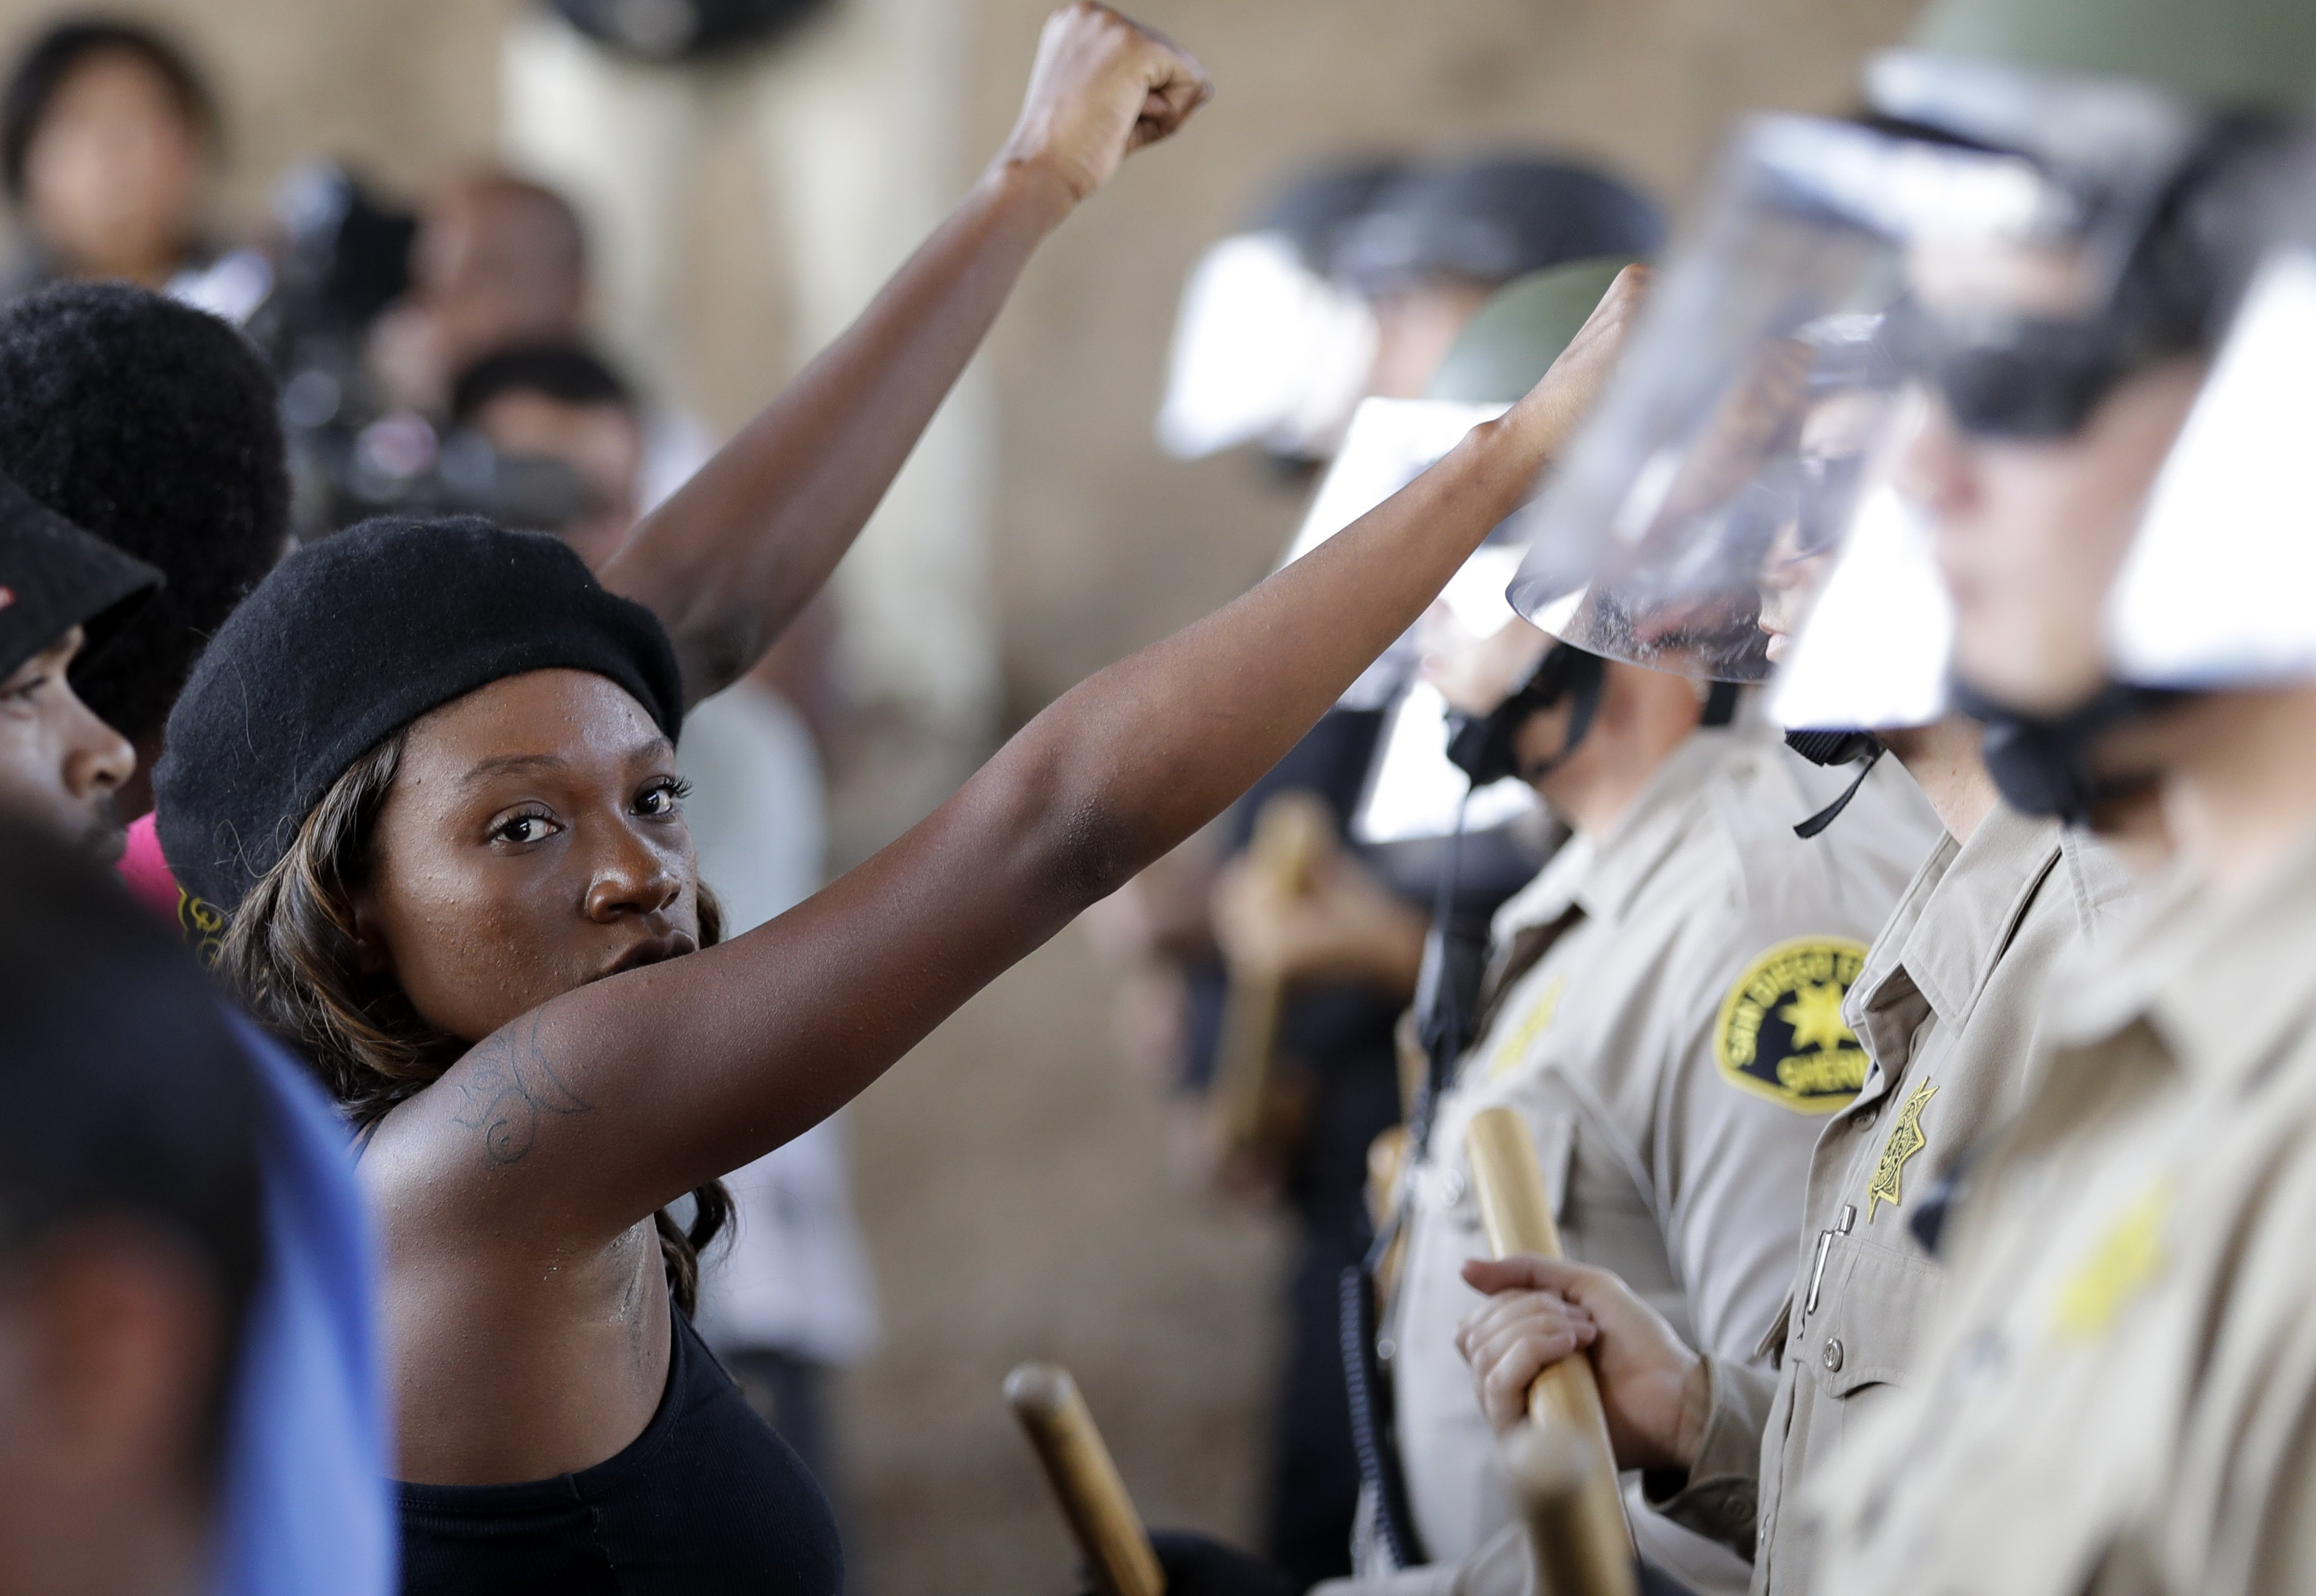 States Spotty on Reporting Police Use of Force Data